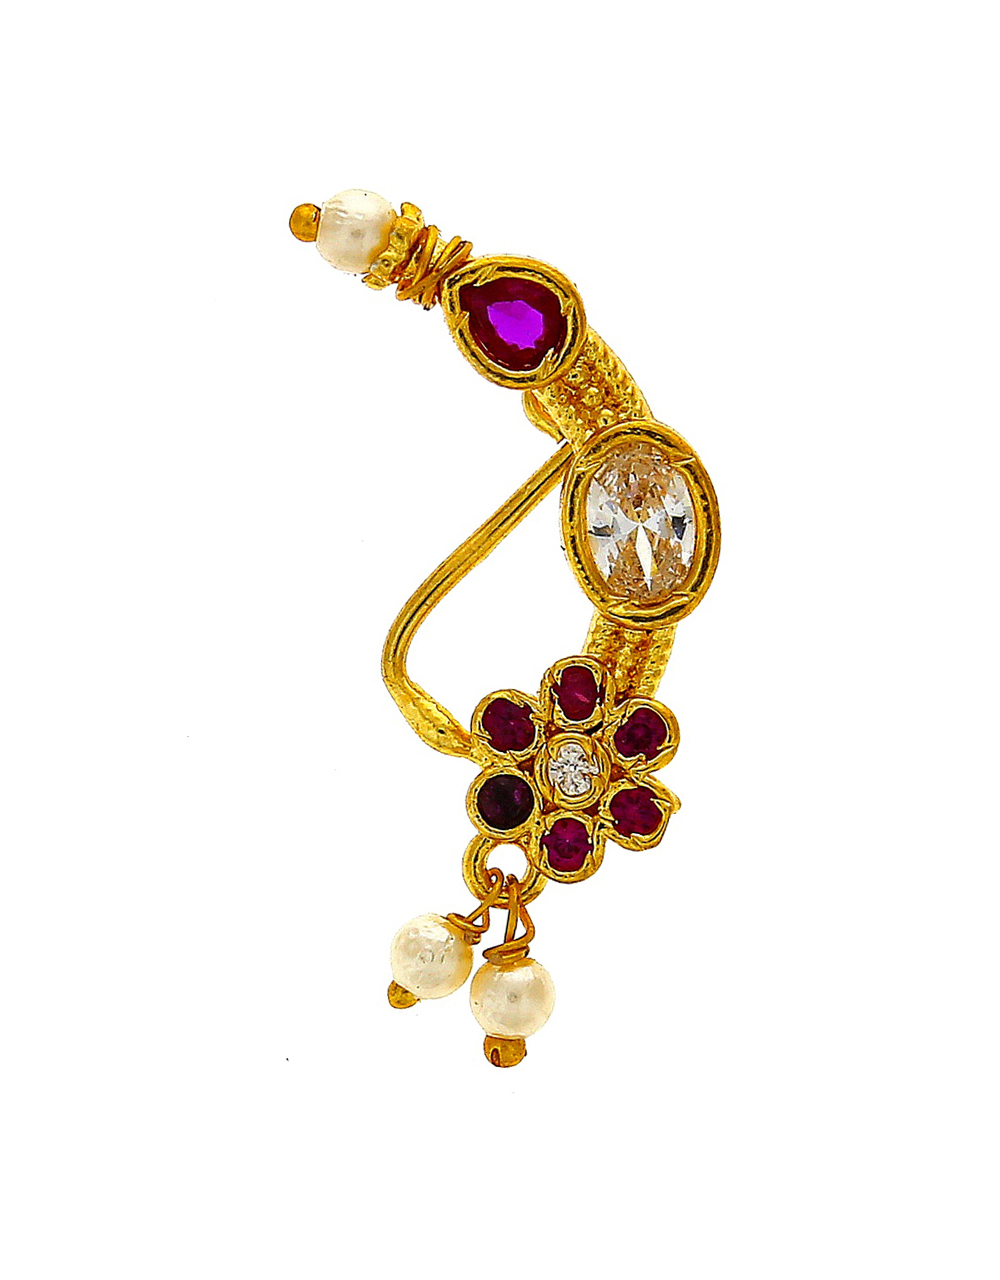 Unique Floral Designed Embedded With Sparkling Stone Maharashtrian Nath.